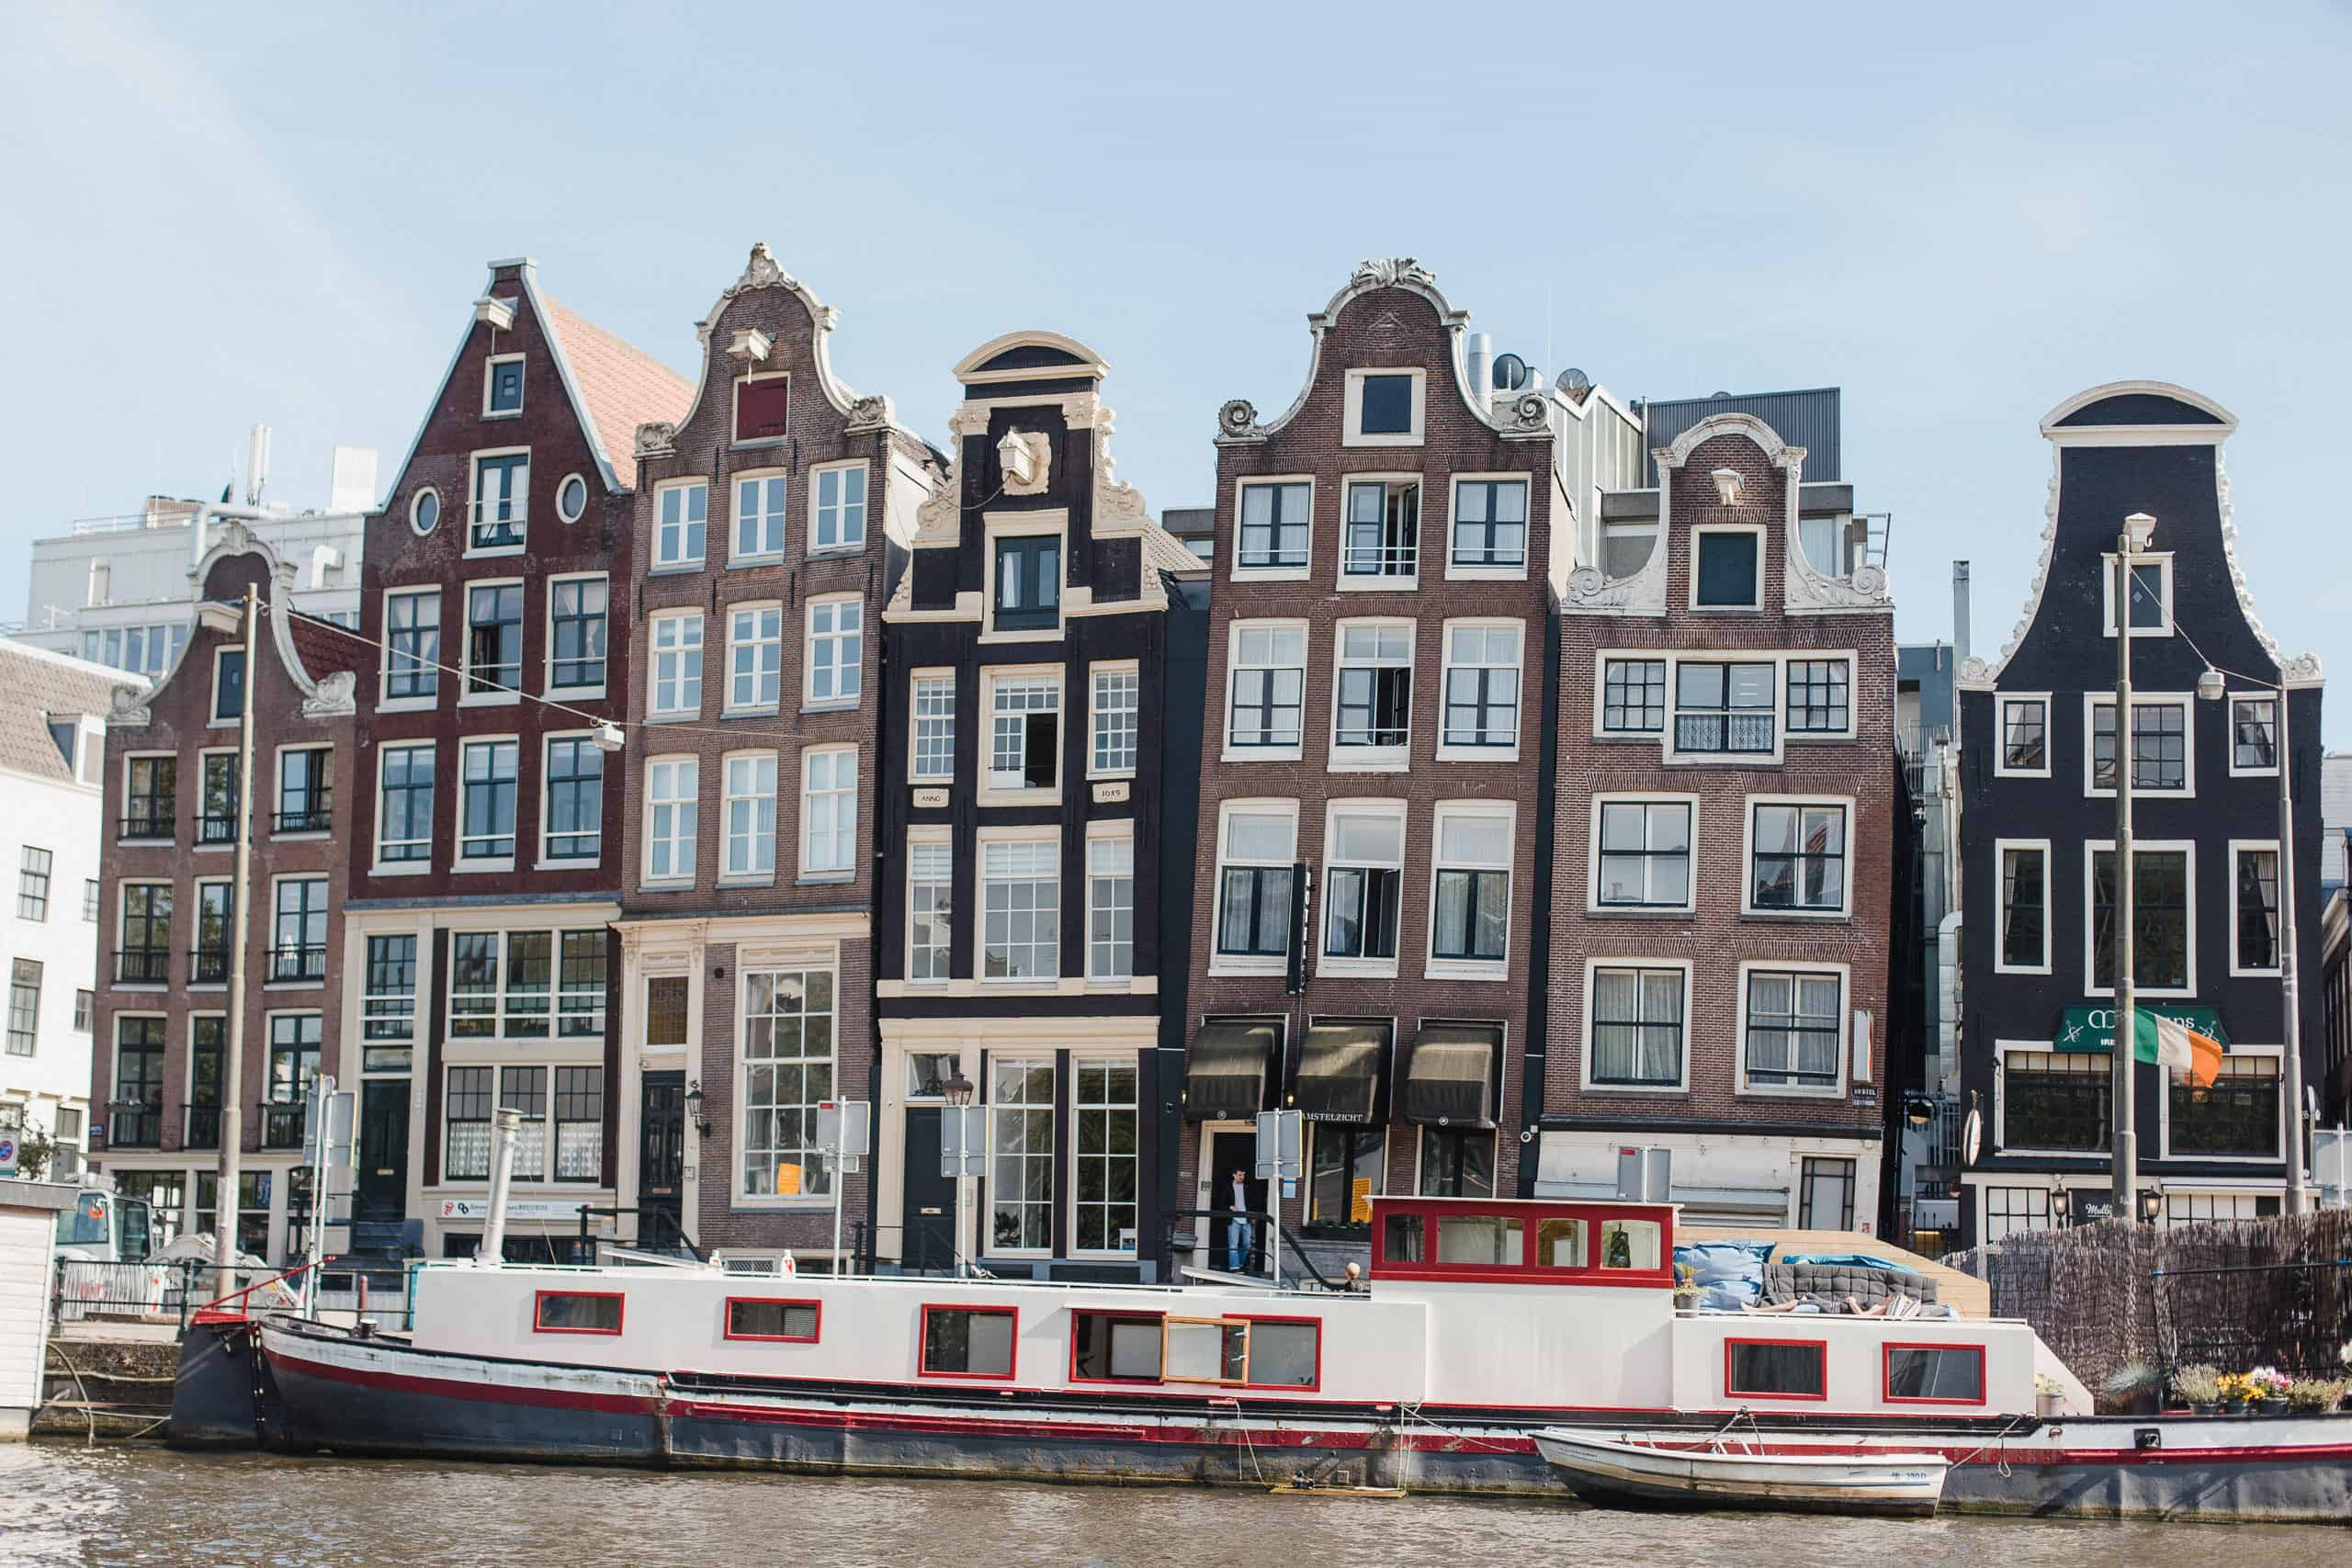 Michelle-Huggleston-Amsterdam-Holiday-Photography